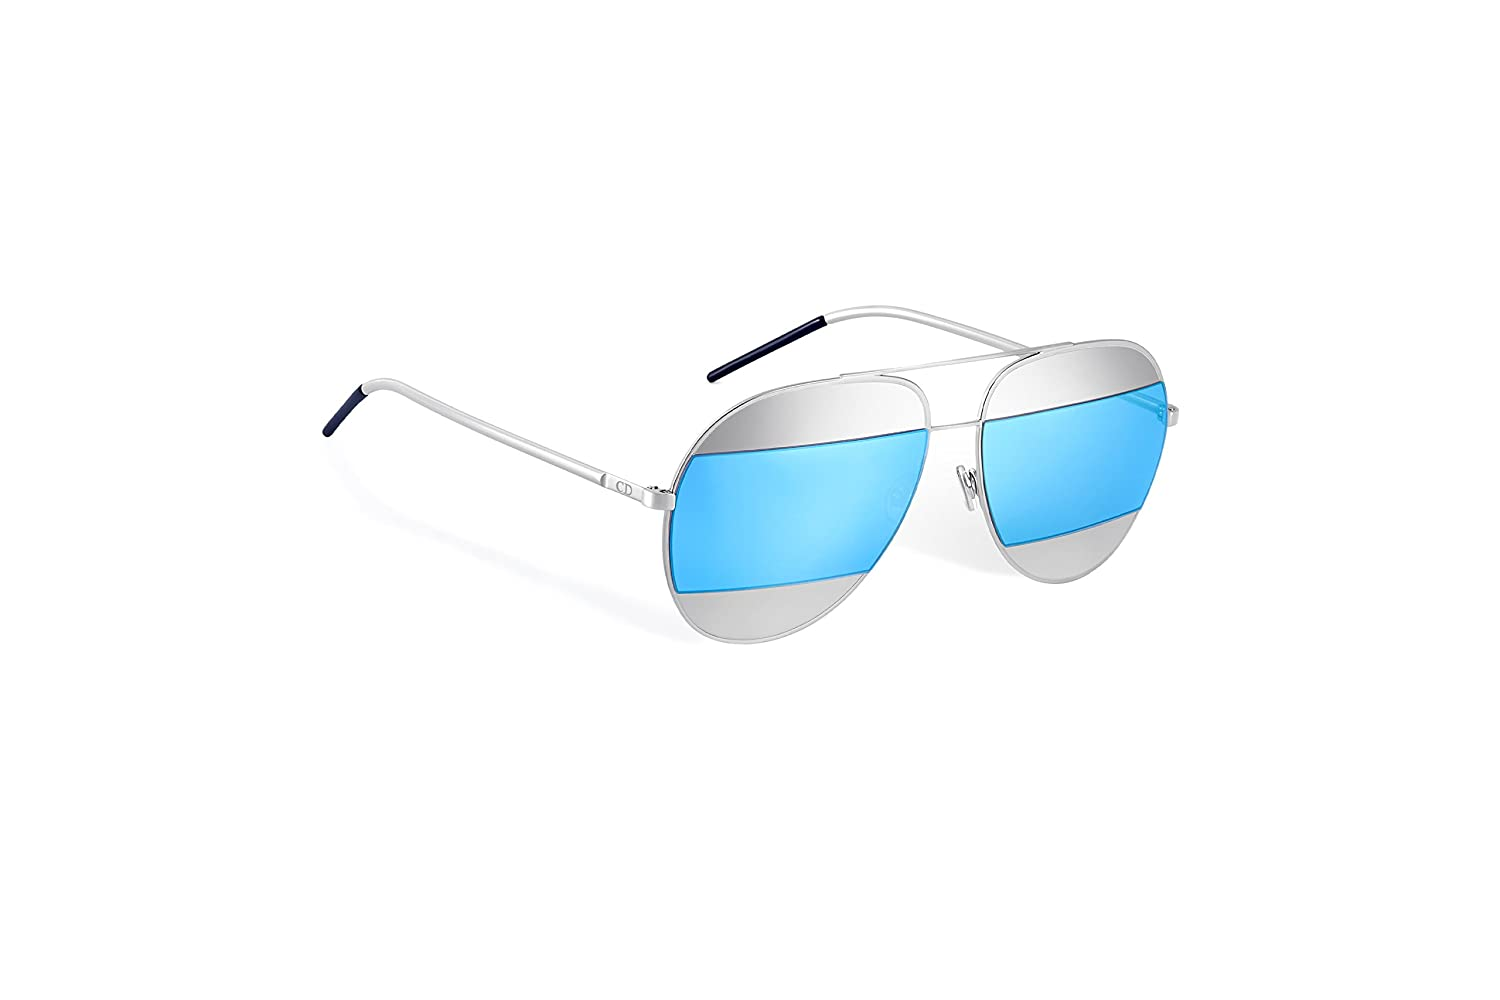 dacd4d4a5991 Amazon.com  Christian Dior Split 1 Silver with blue mirrored lenses color  010 3J Size 59  Clothing